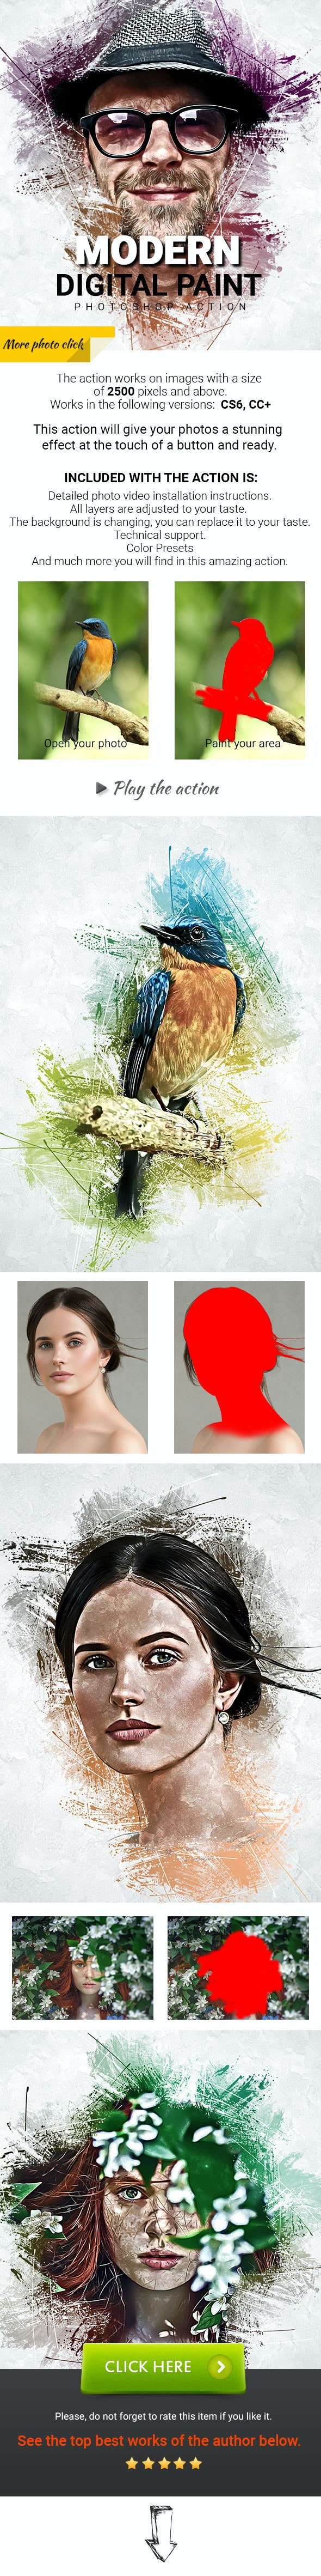 Modern Digital Paint Photoshop Action - Photo Effects Actions